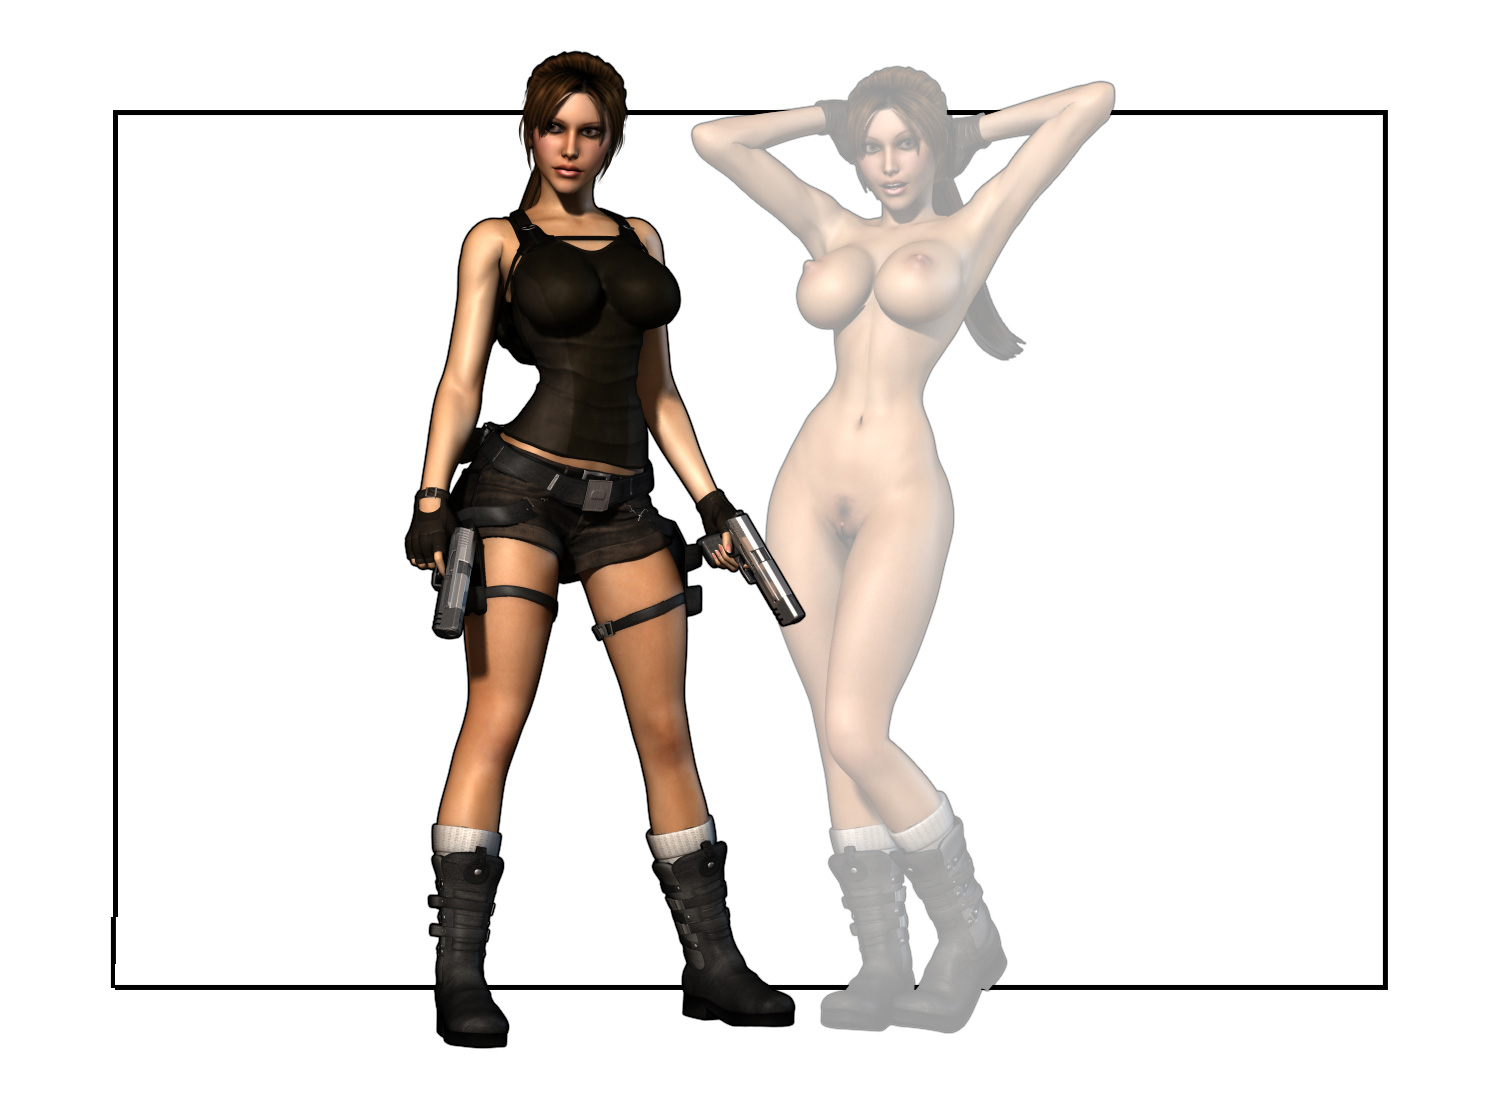 Tomb raider legend naked patch porncraft pics